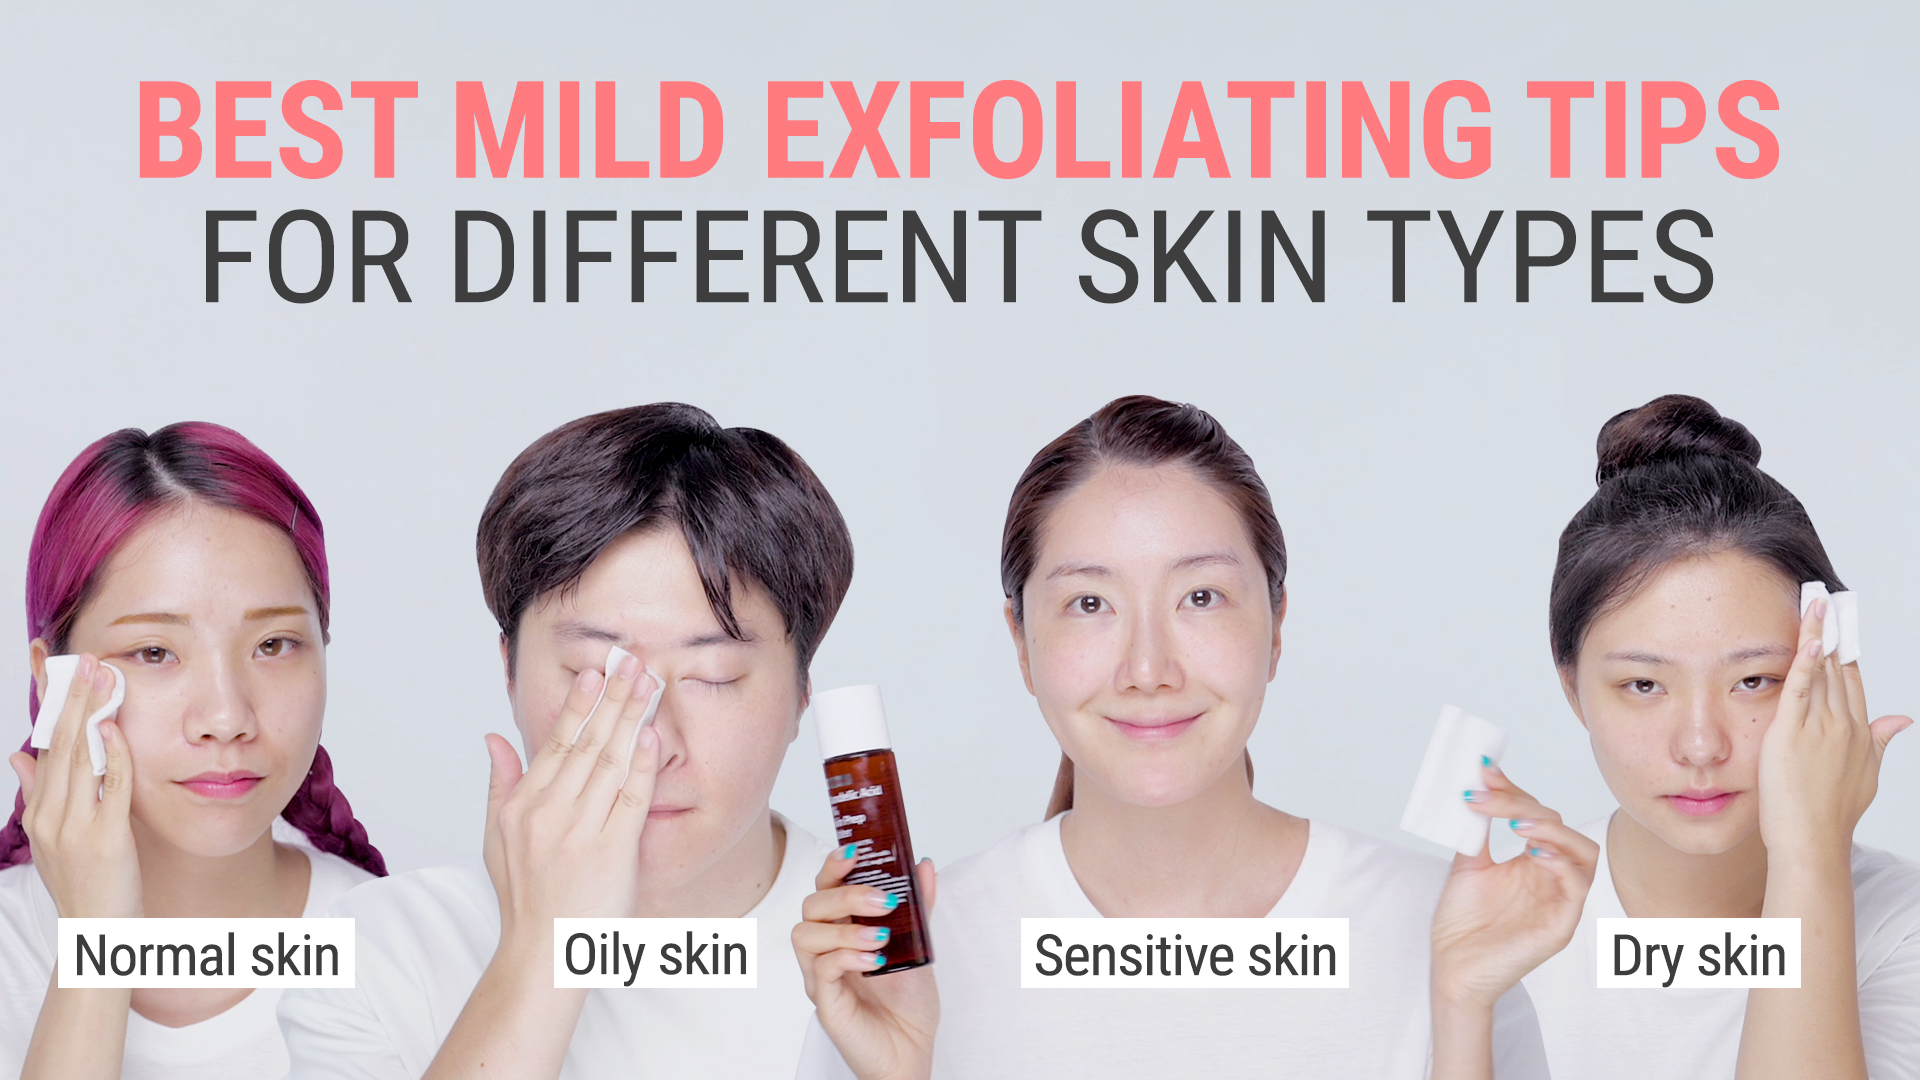 How To Exfoliate Mildly Daily For Different Skin Types | Mandelic Acid 5% Skin Prep Water